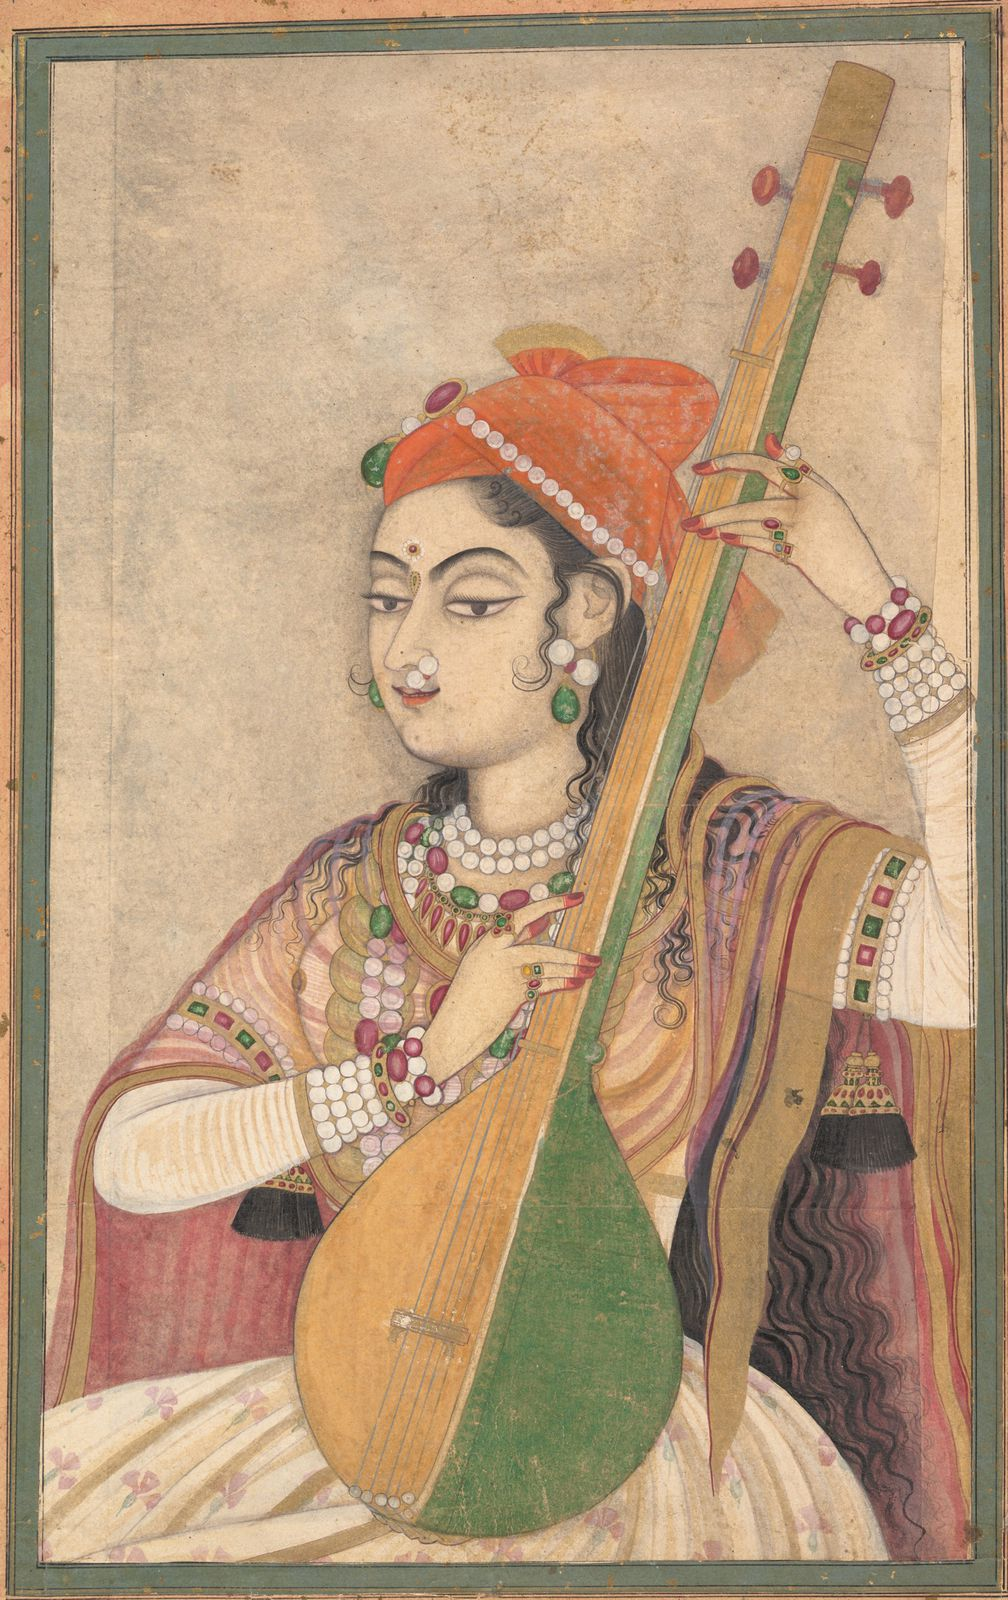 A Lady Playing the Tanpura, ca. 1735 India (Rajasthan, Kishangarh) Ink, opaque and transparent watercolor, and gold on paper 18 1/2 x 13 1/4 in. (47 x 33.7 cm) Fletcher Fund, 1996 (1996.100.1)